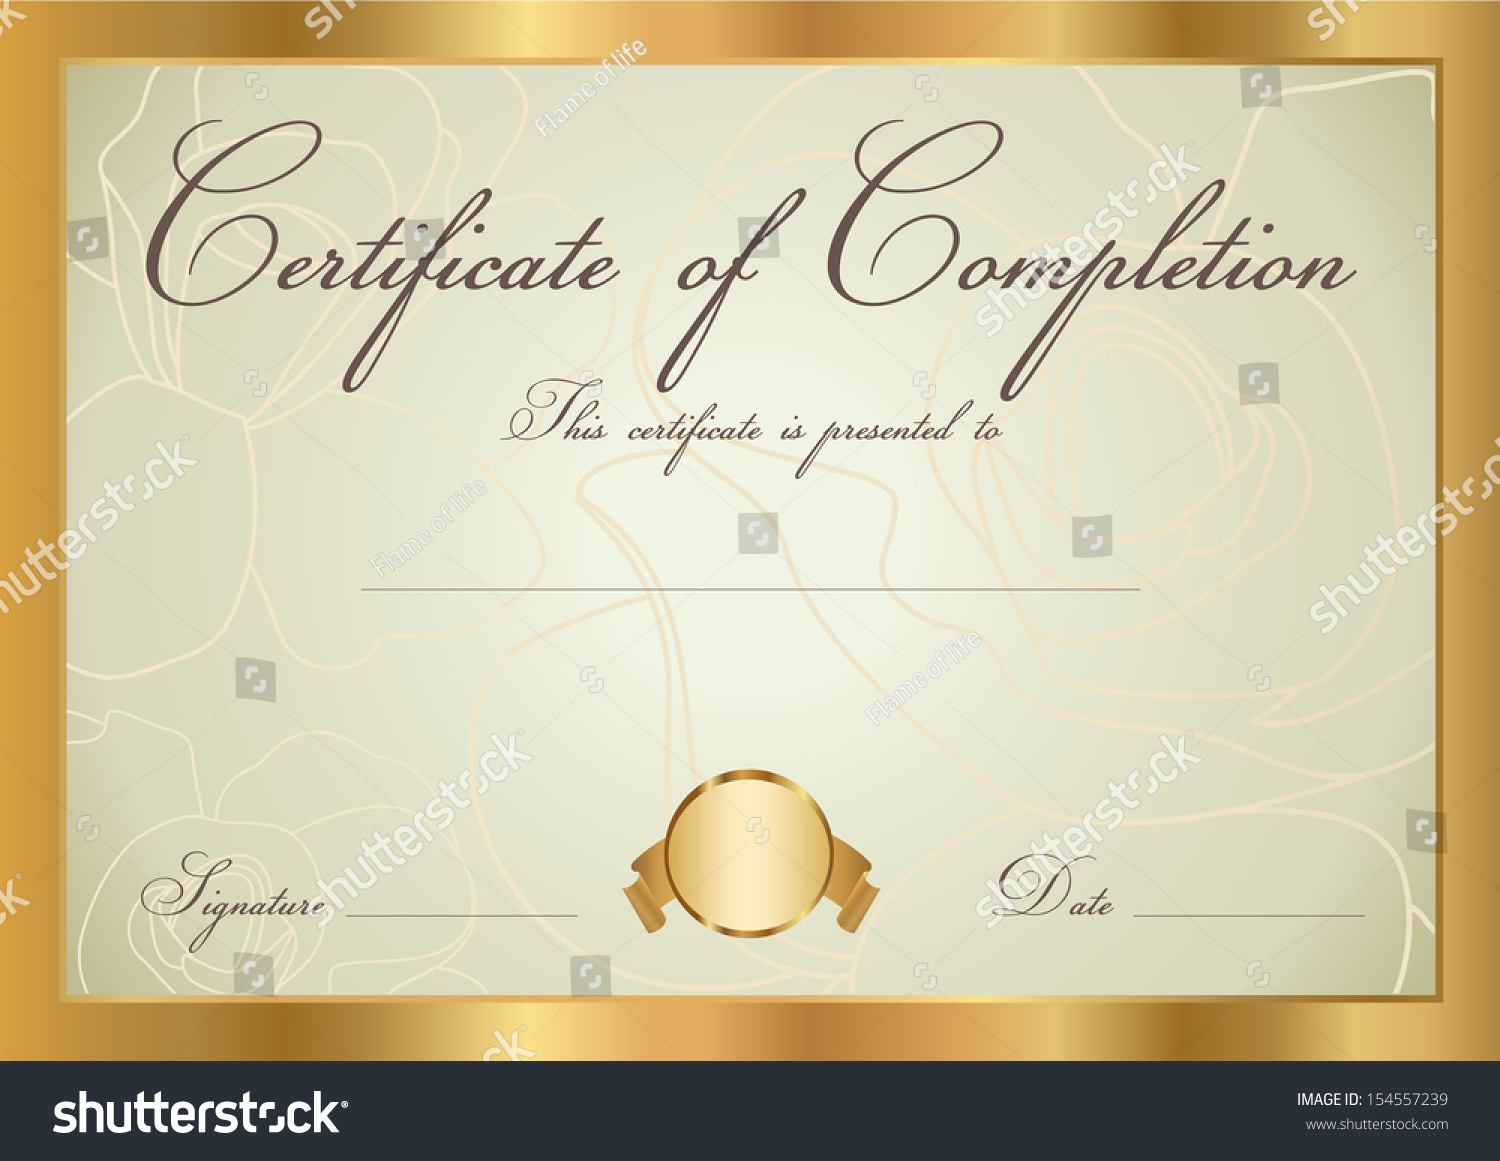 Certificate diploma completion design template background stock certificate diploma of completion design template background floral scroll yadclub Gallery